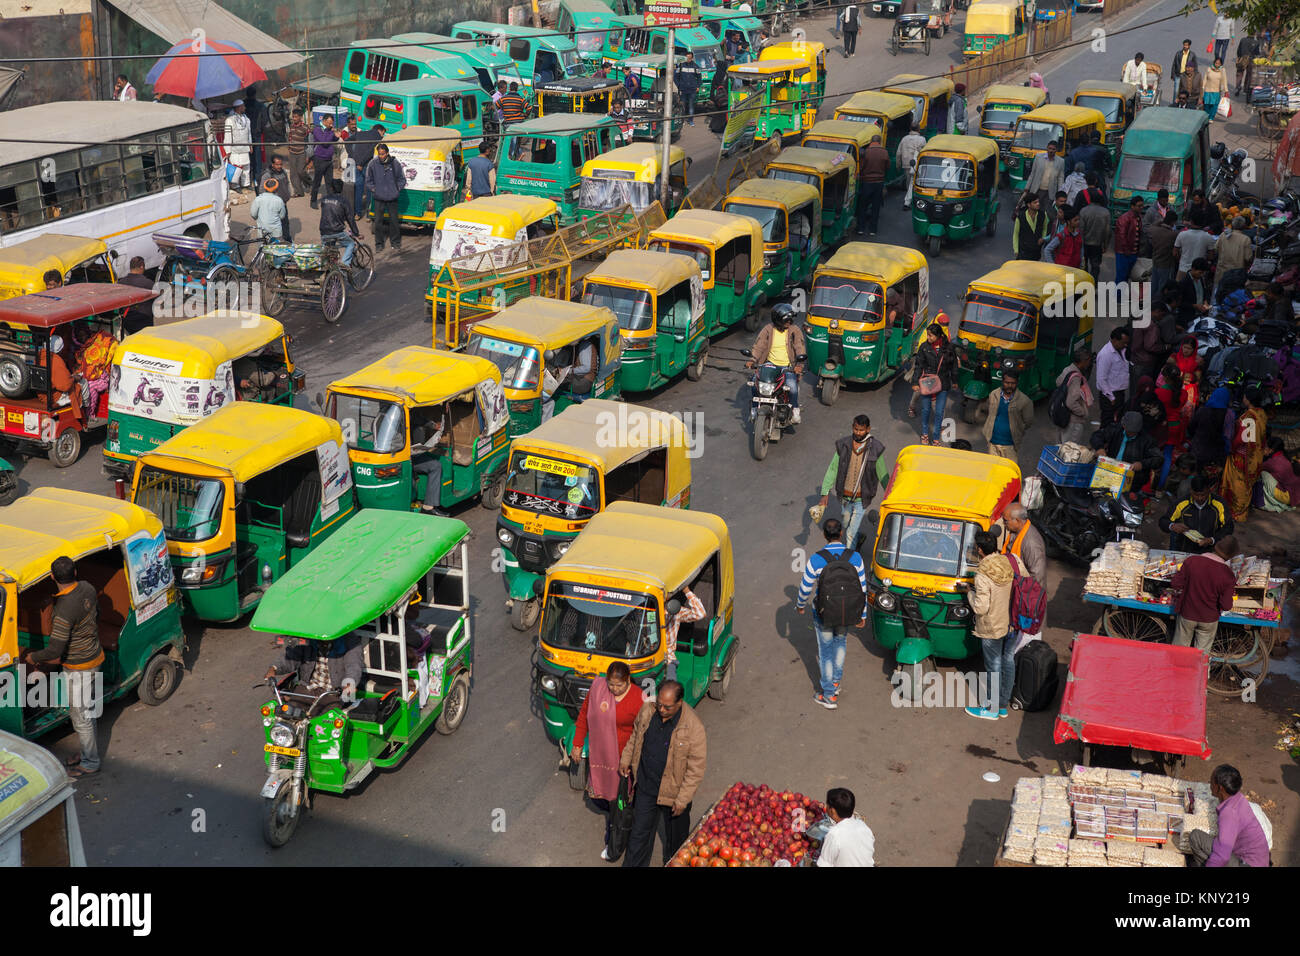 A street in Lucknow congested with traffic - Stock Image